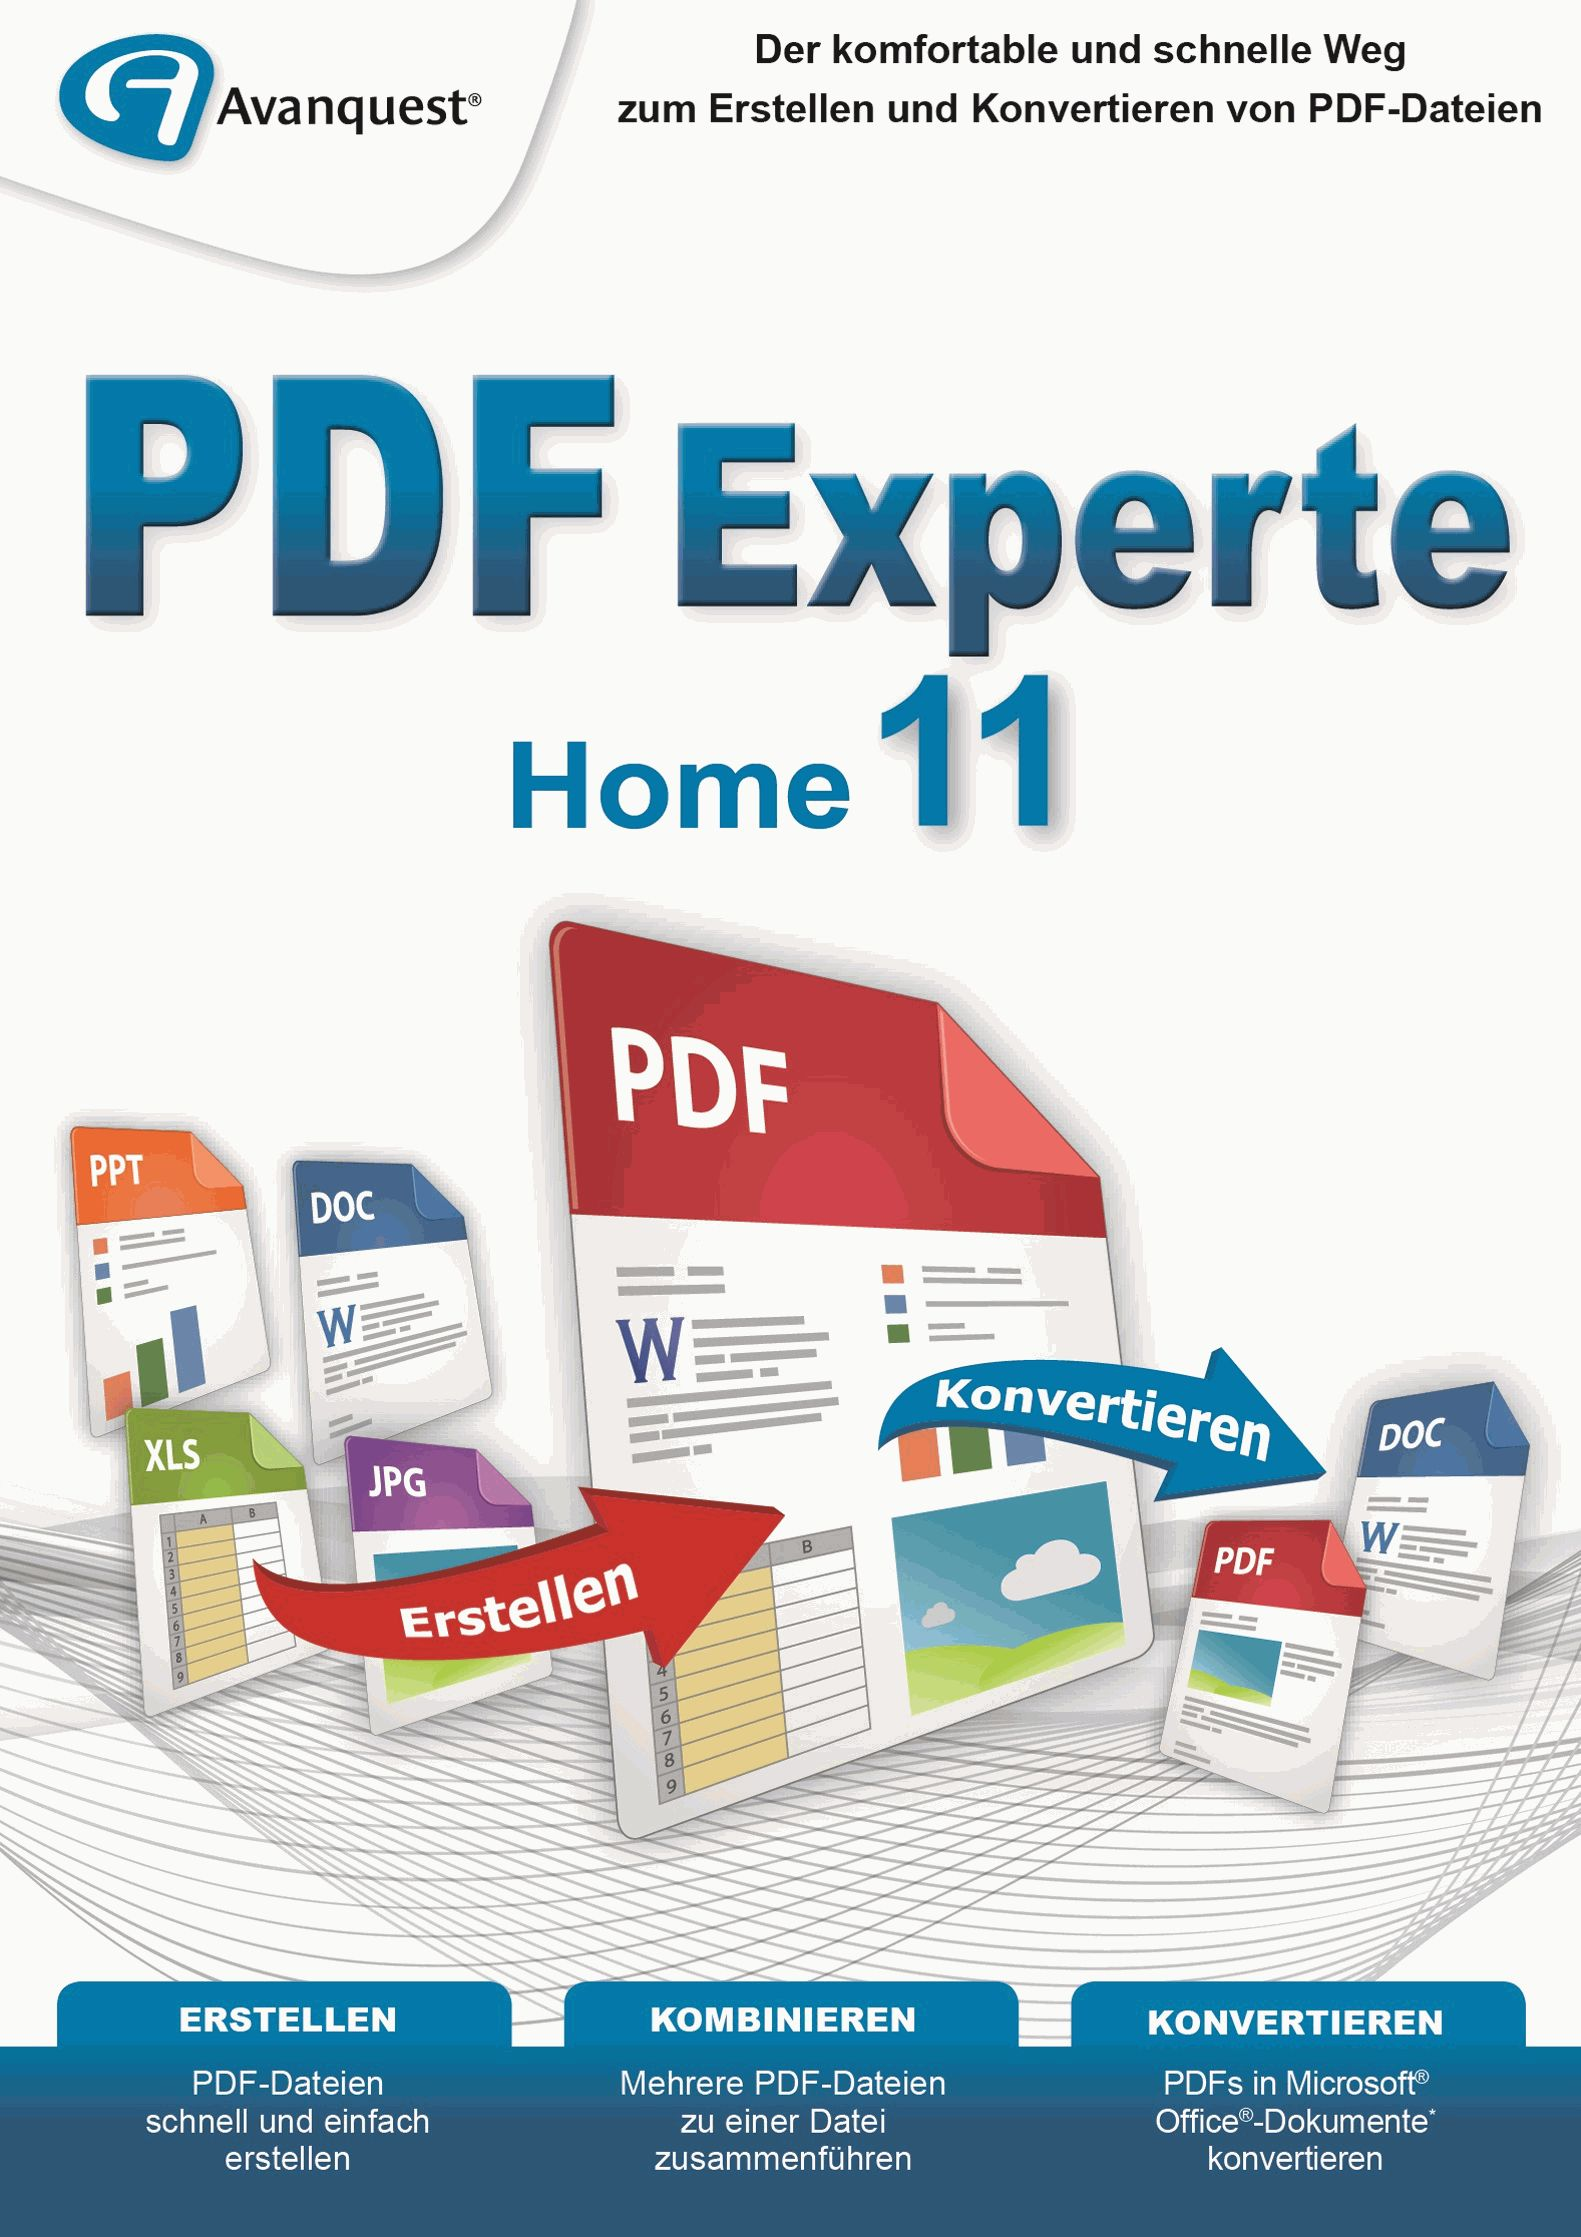 PDF Experte 11 Home - Der praktische PDF-Manager für Windows 10|8|7|Vista|XP! [Download]